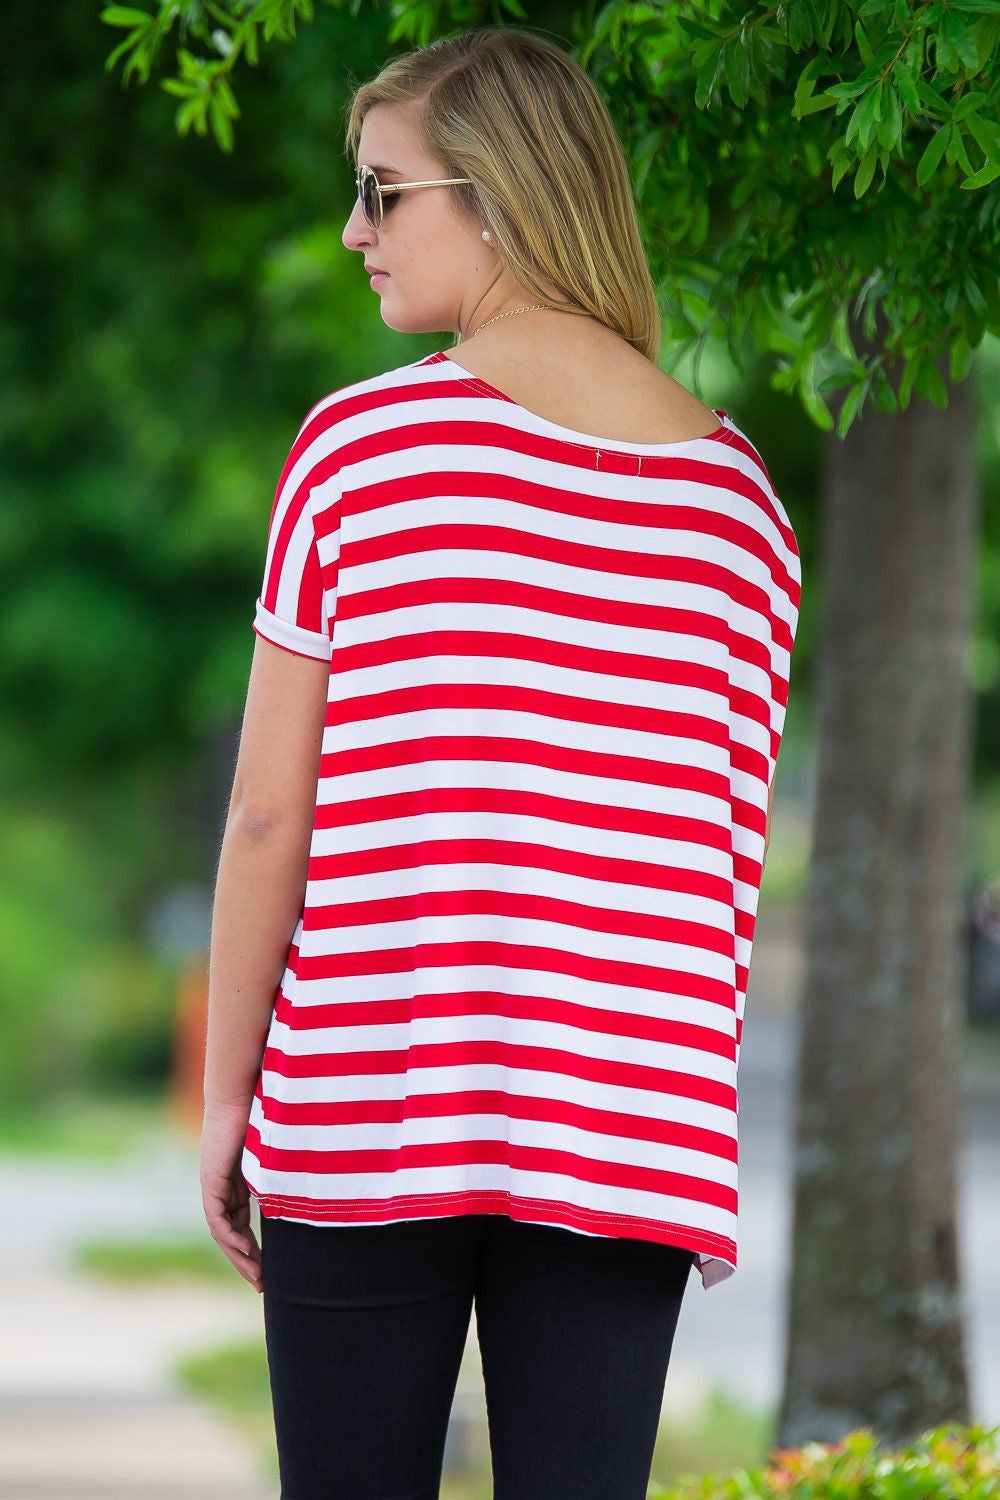 Short Sleeve Thick Stripe Piko Top - Red/White - Piko Clothing - 2